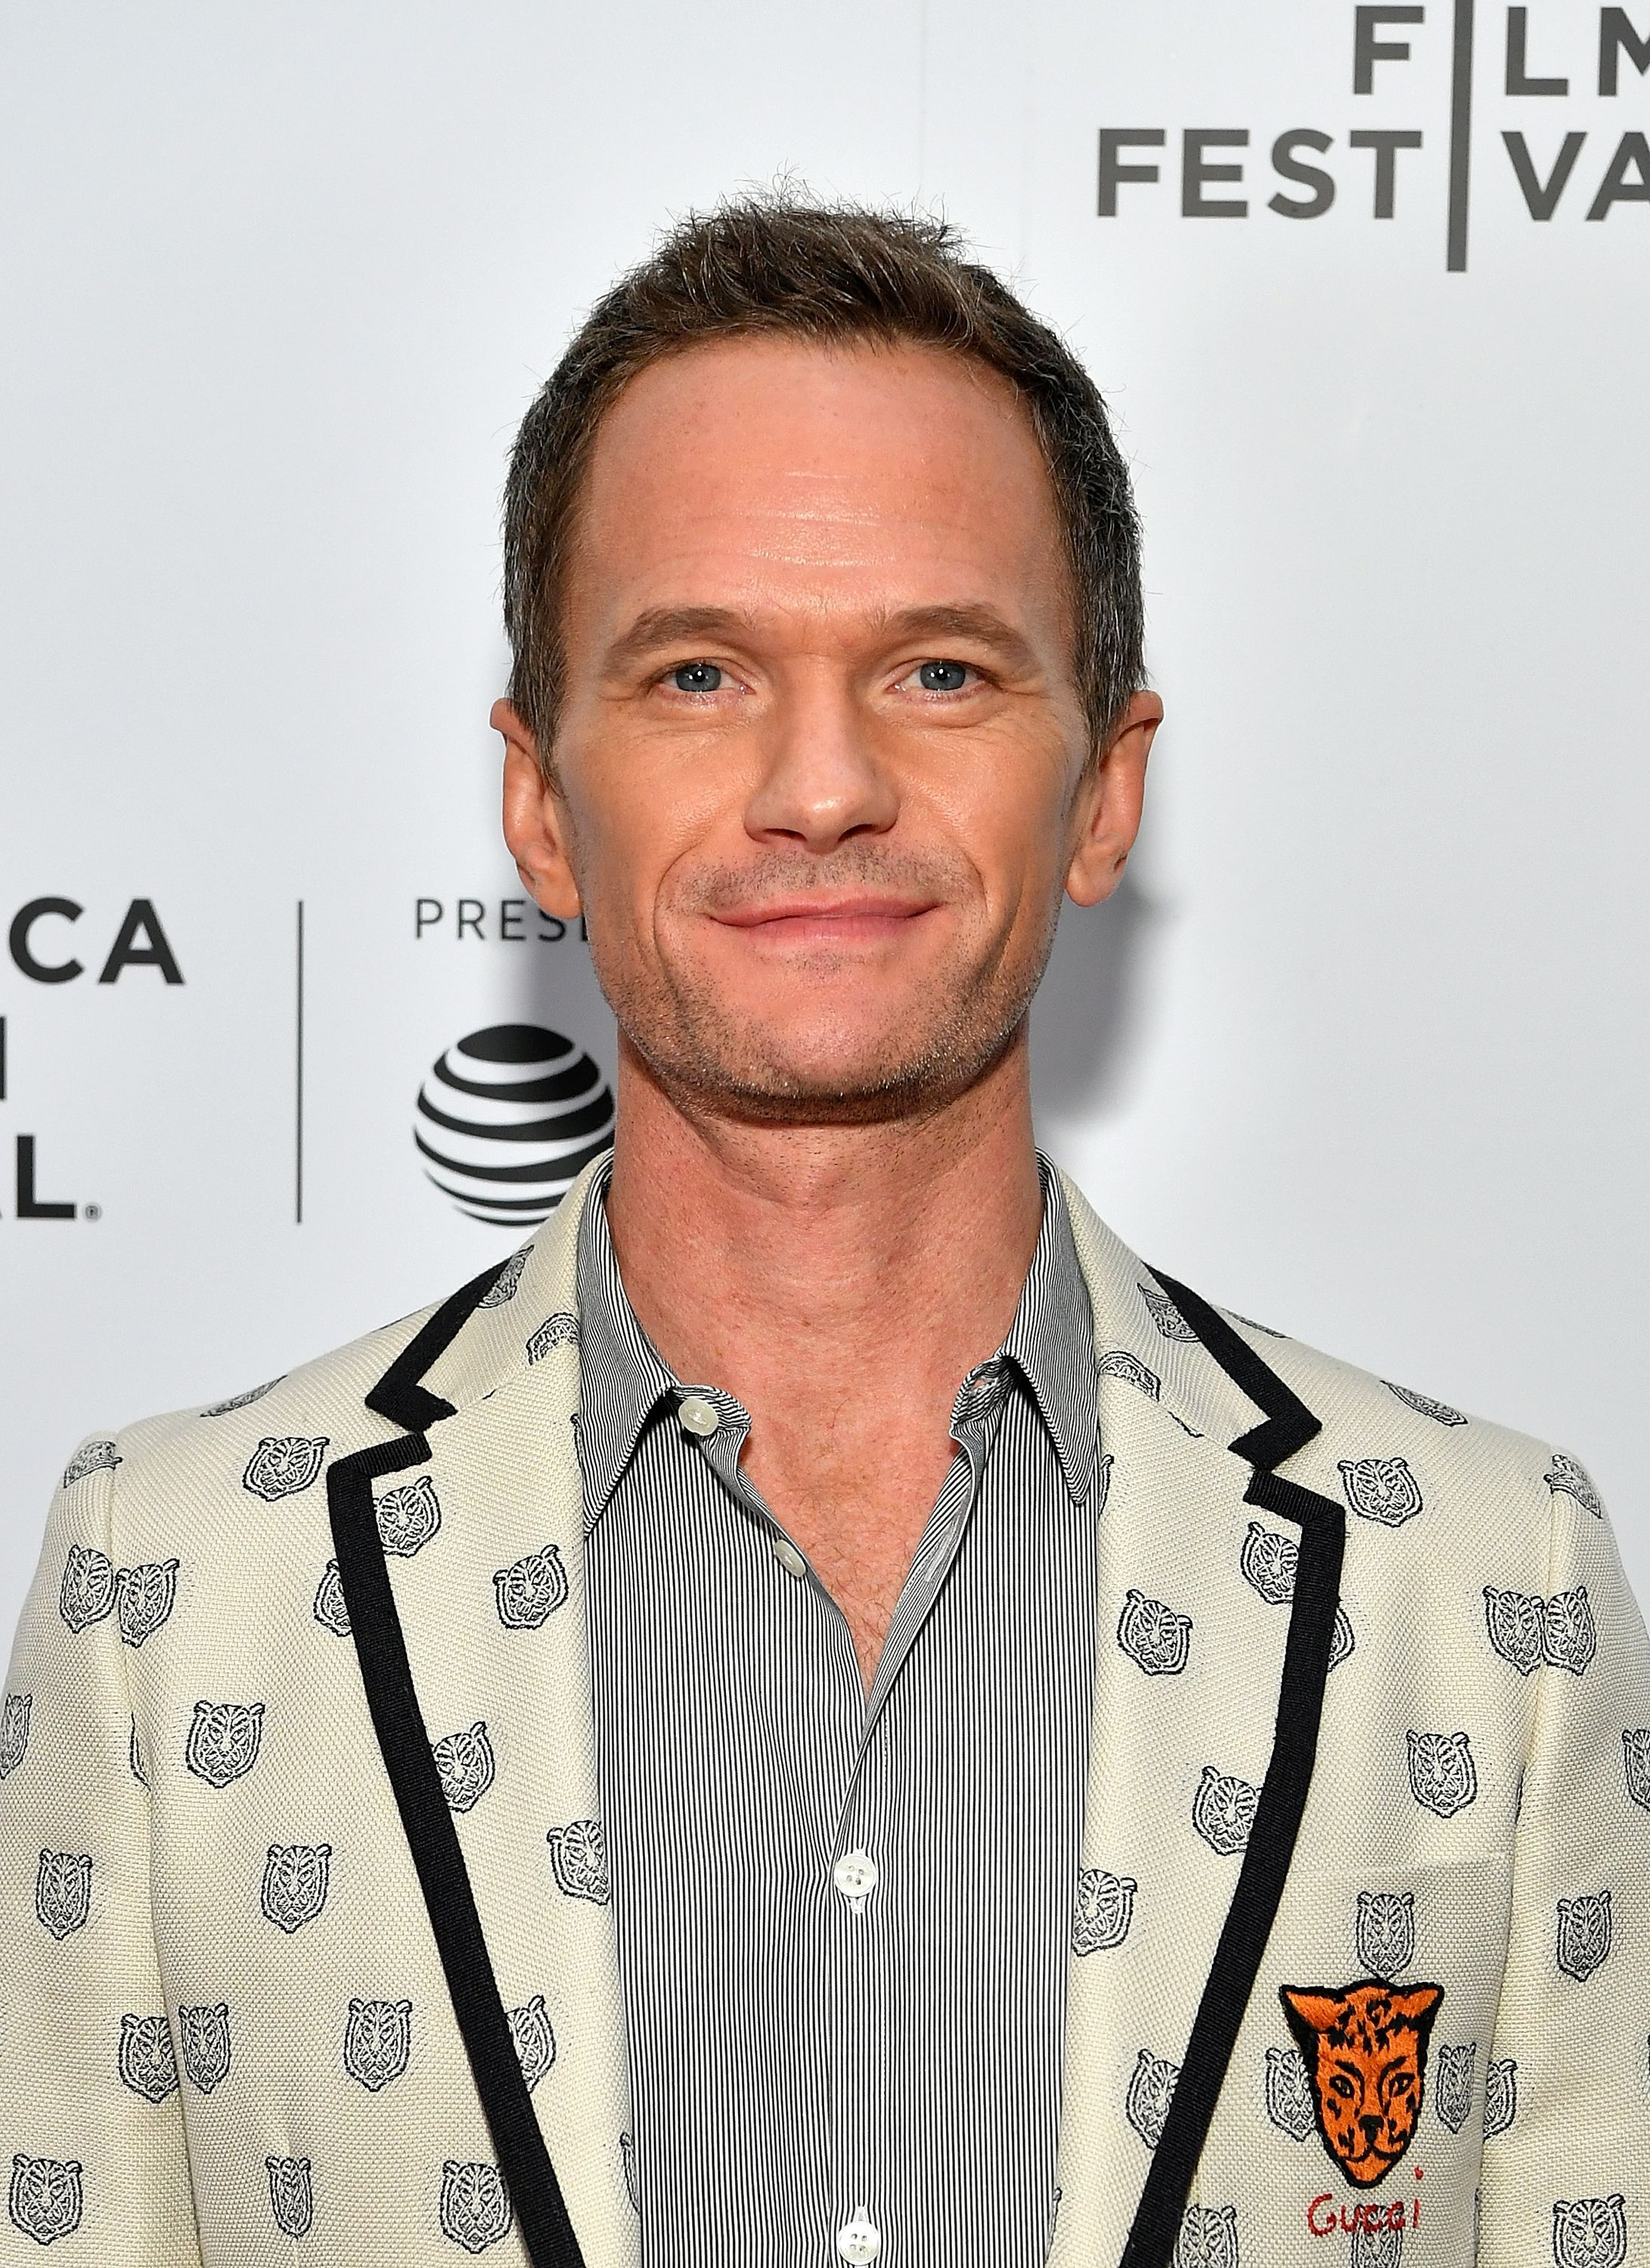 Actor Neil Patrick Harris On The Red Carpet Looking Very Handsome Photo Credits Getty Images How To Have Twins Celebrities Neil Patrick Harris